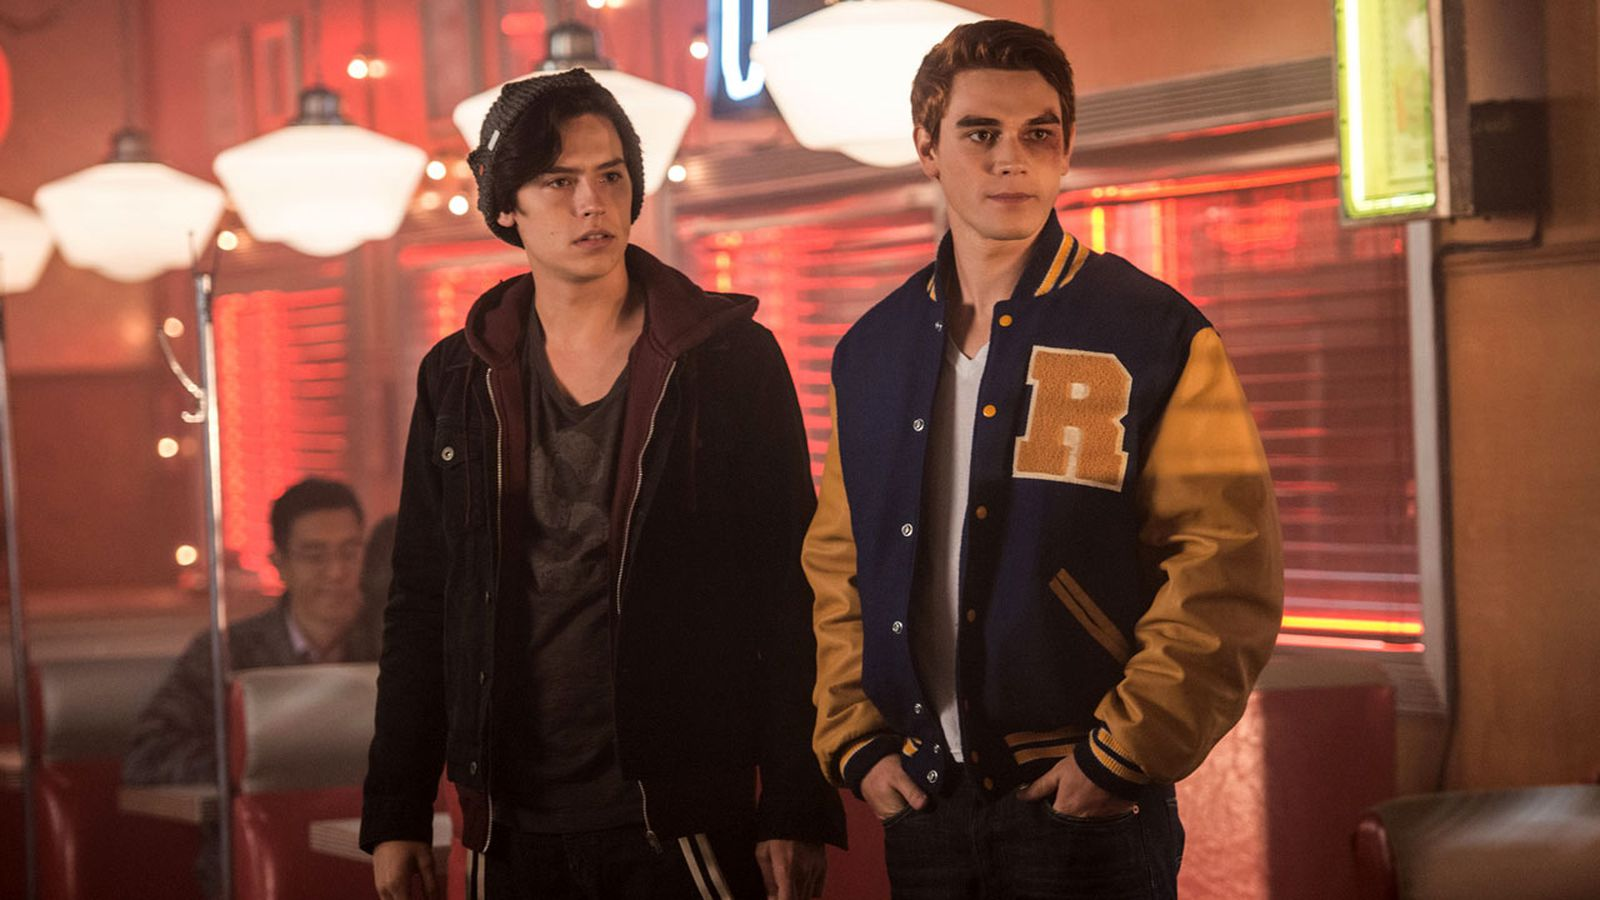 People can't stop mocking Jughead's worst Riverdale scene